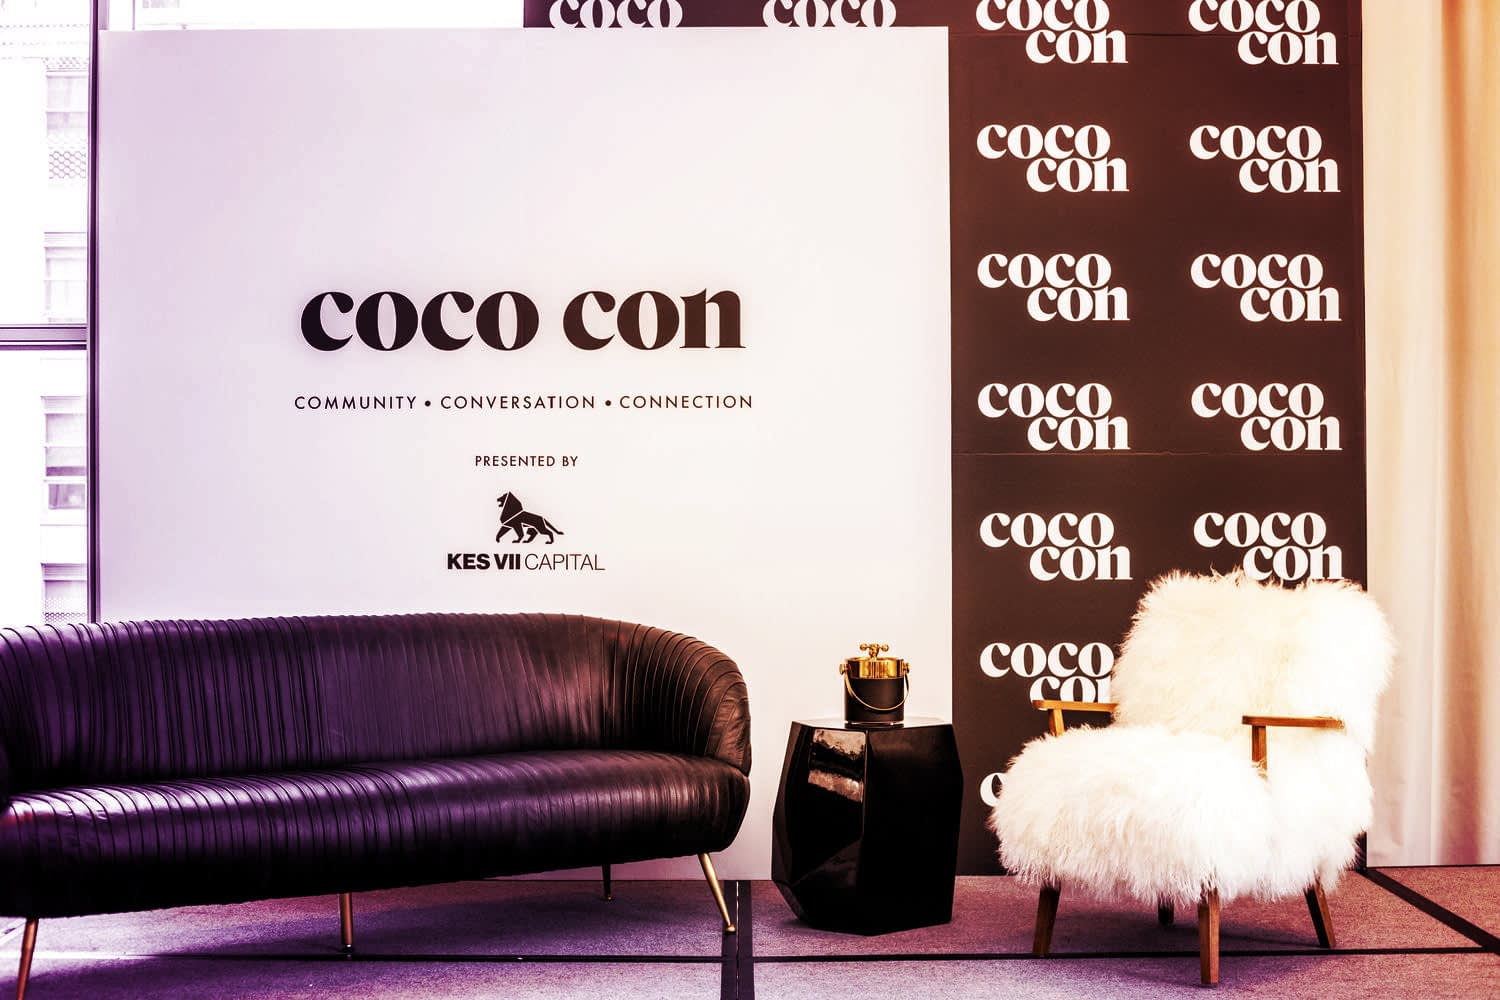 What we learned at Coco Con